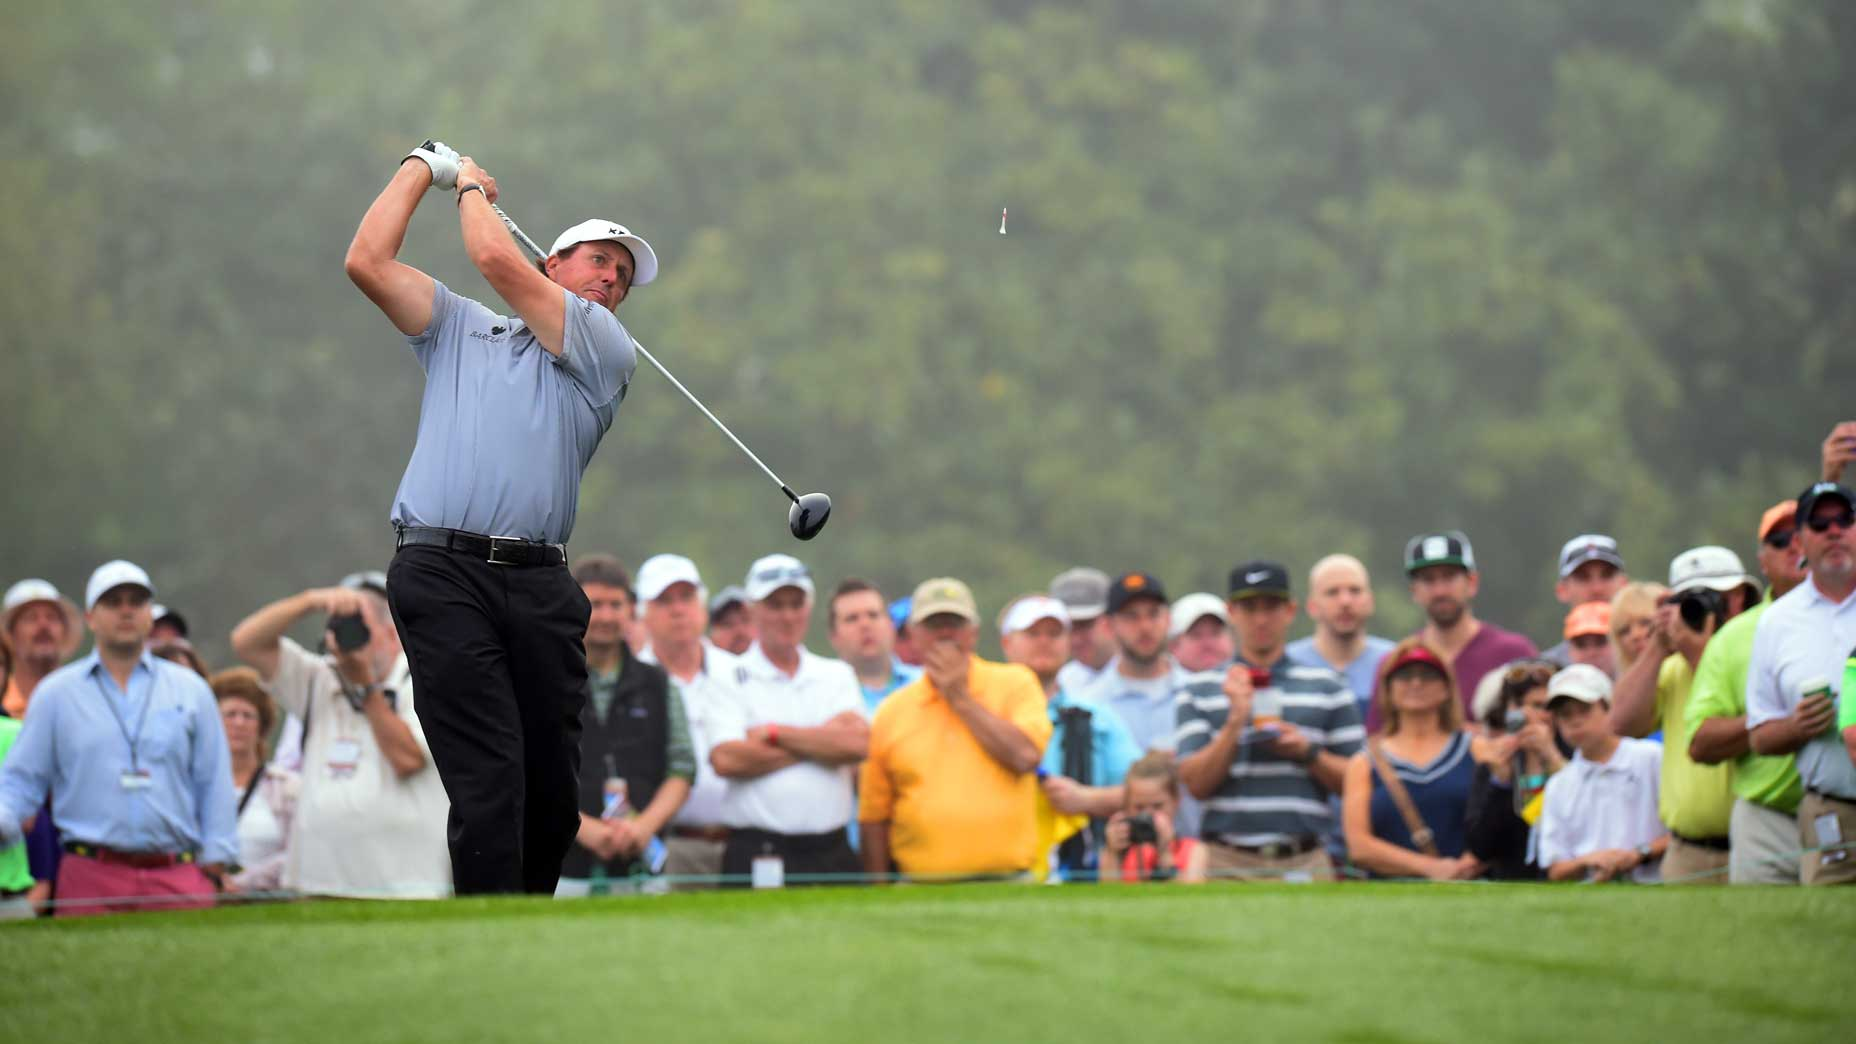 #AskAlan mailbag: Will using split tees at the Masters be unfair to some players?